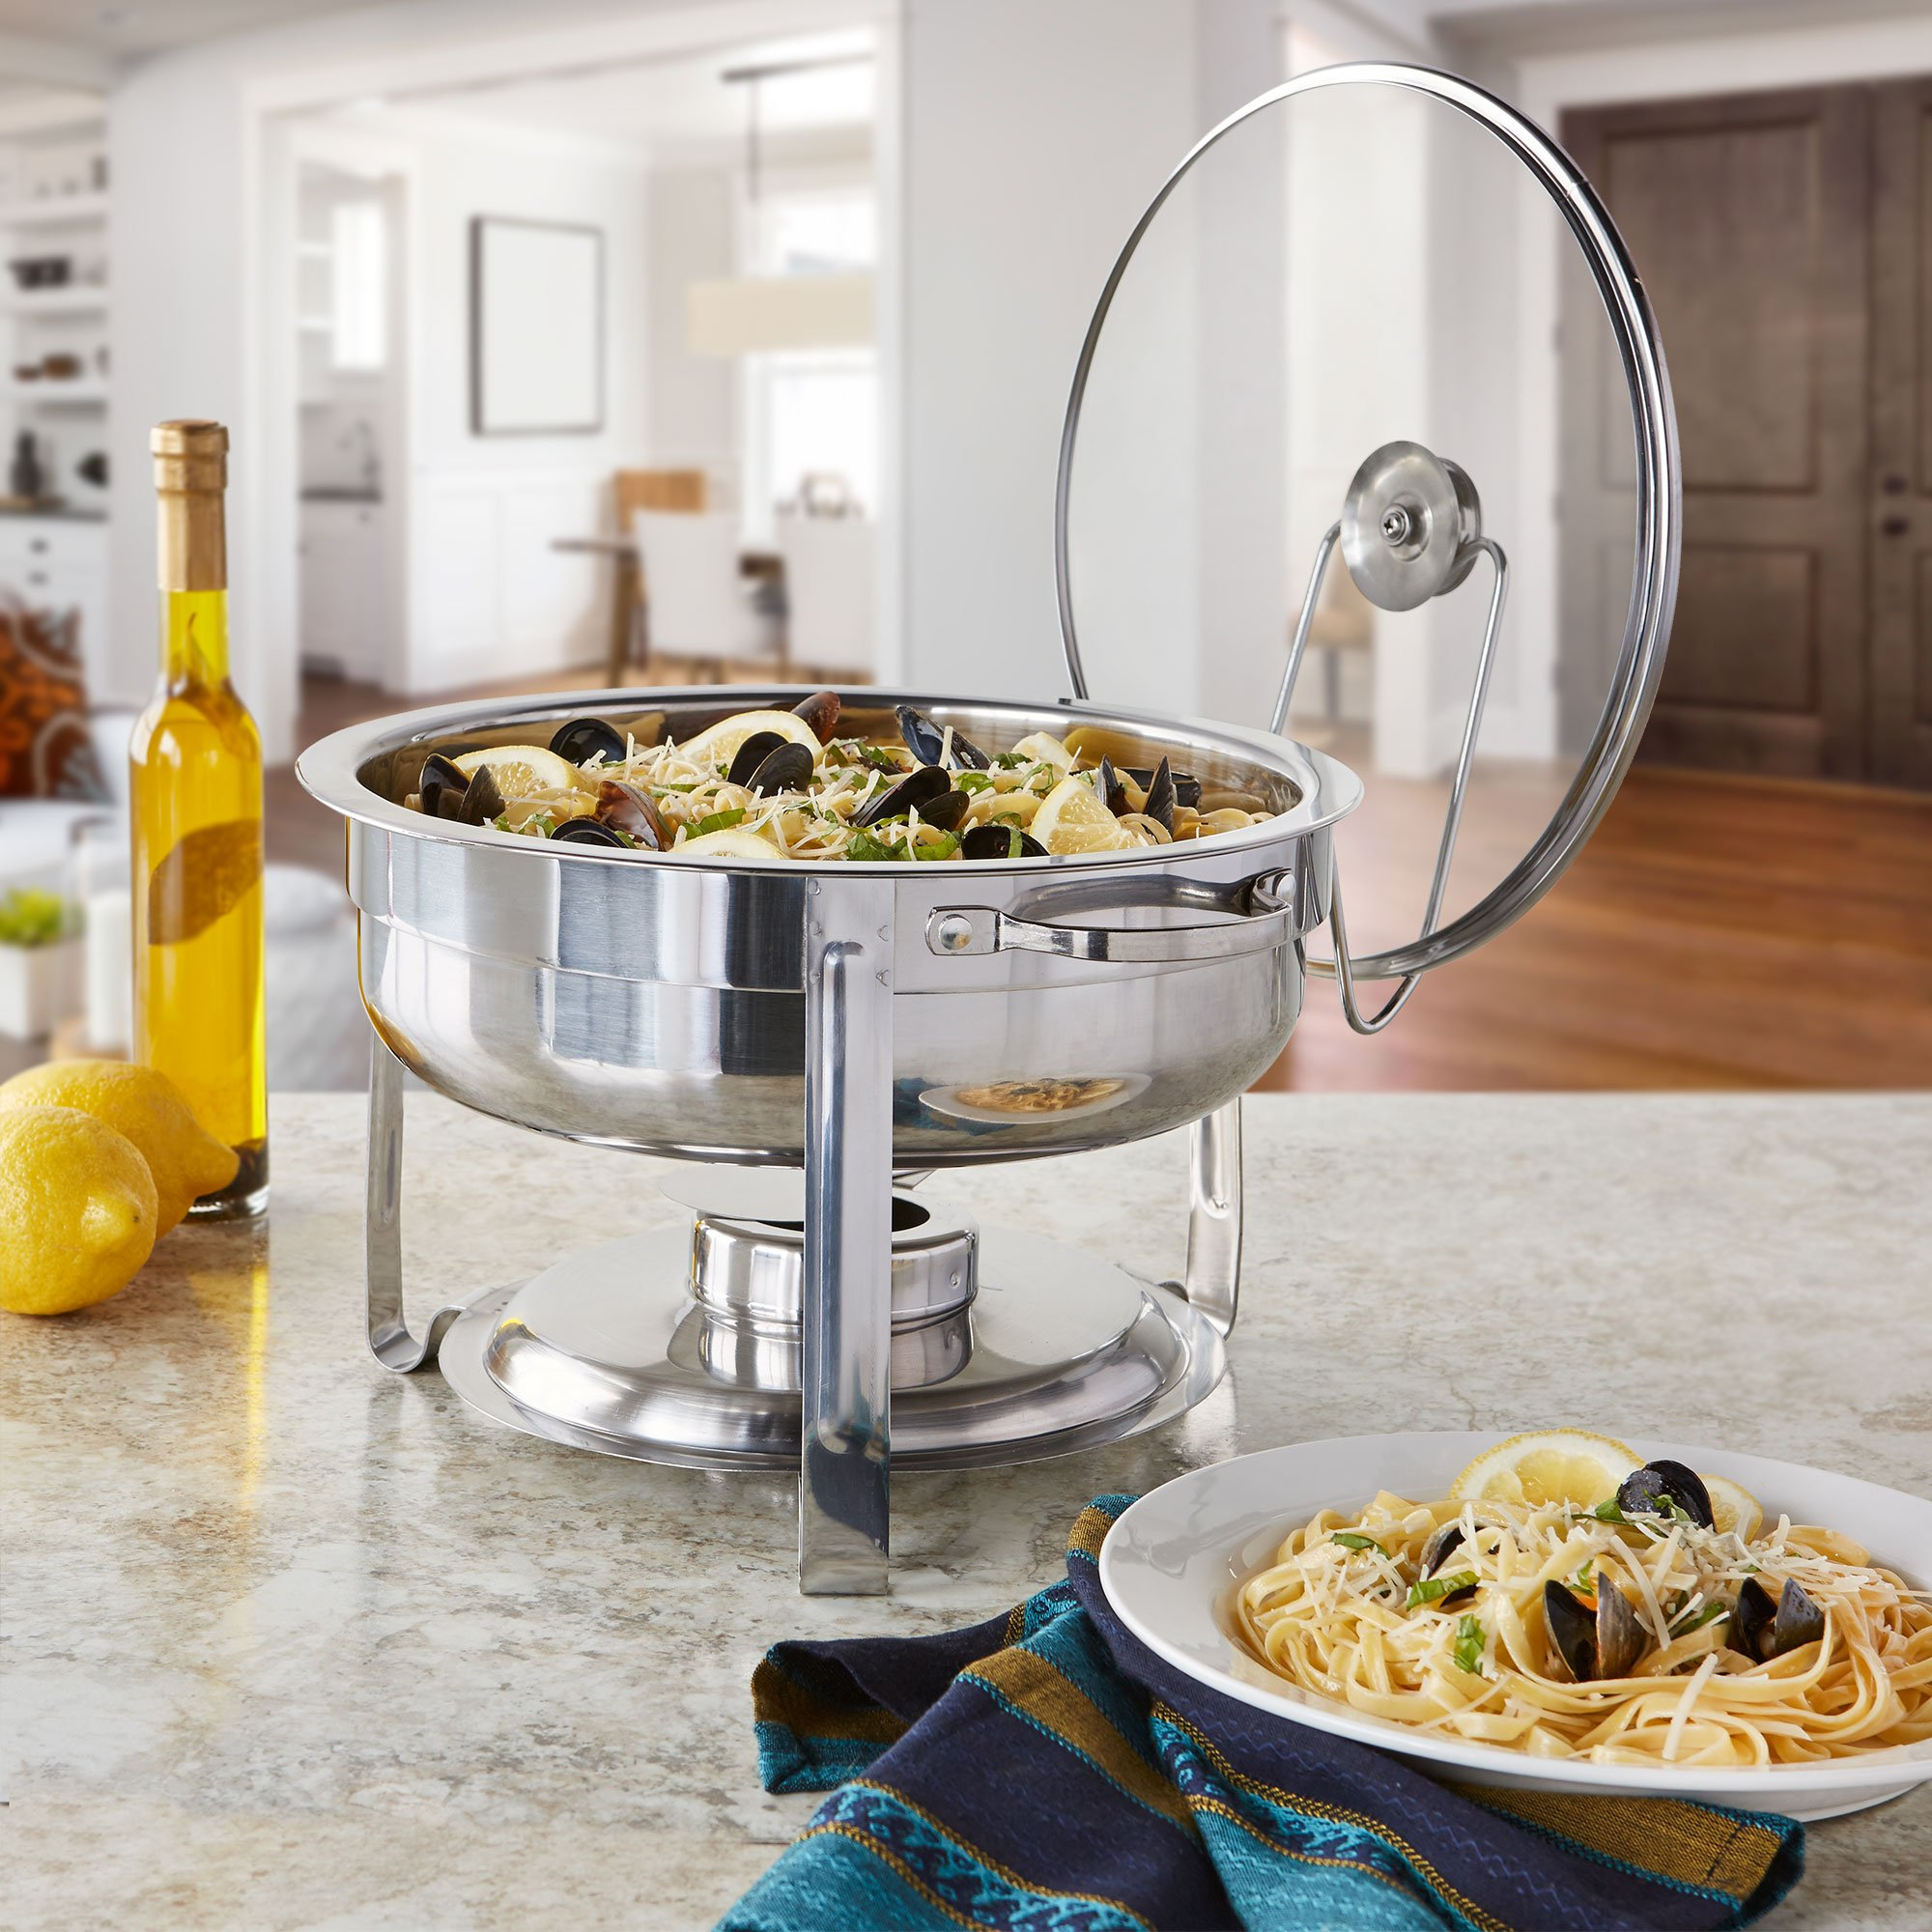 Artisan Stainless Steel Round Buffet Chafer with Glass Lid, 4-Quart Capacity by Artisan (Image #5)